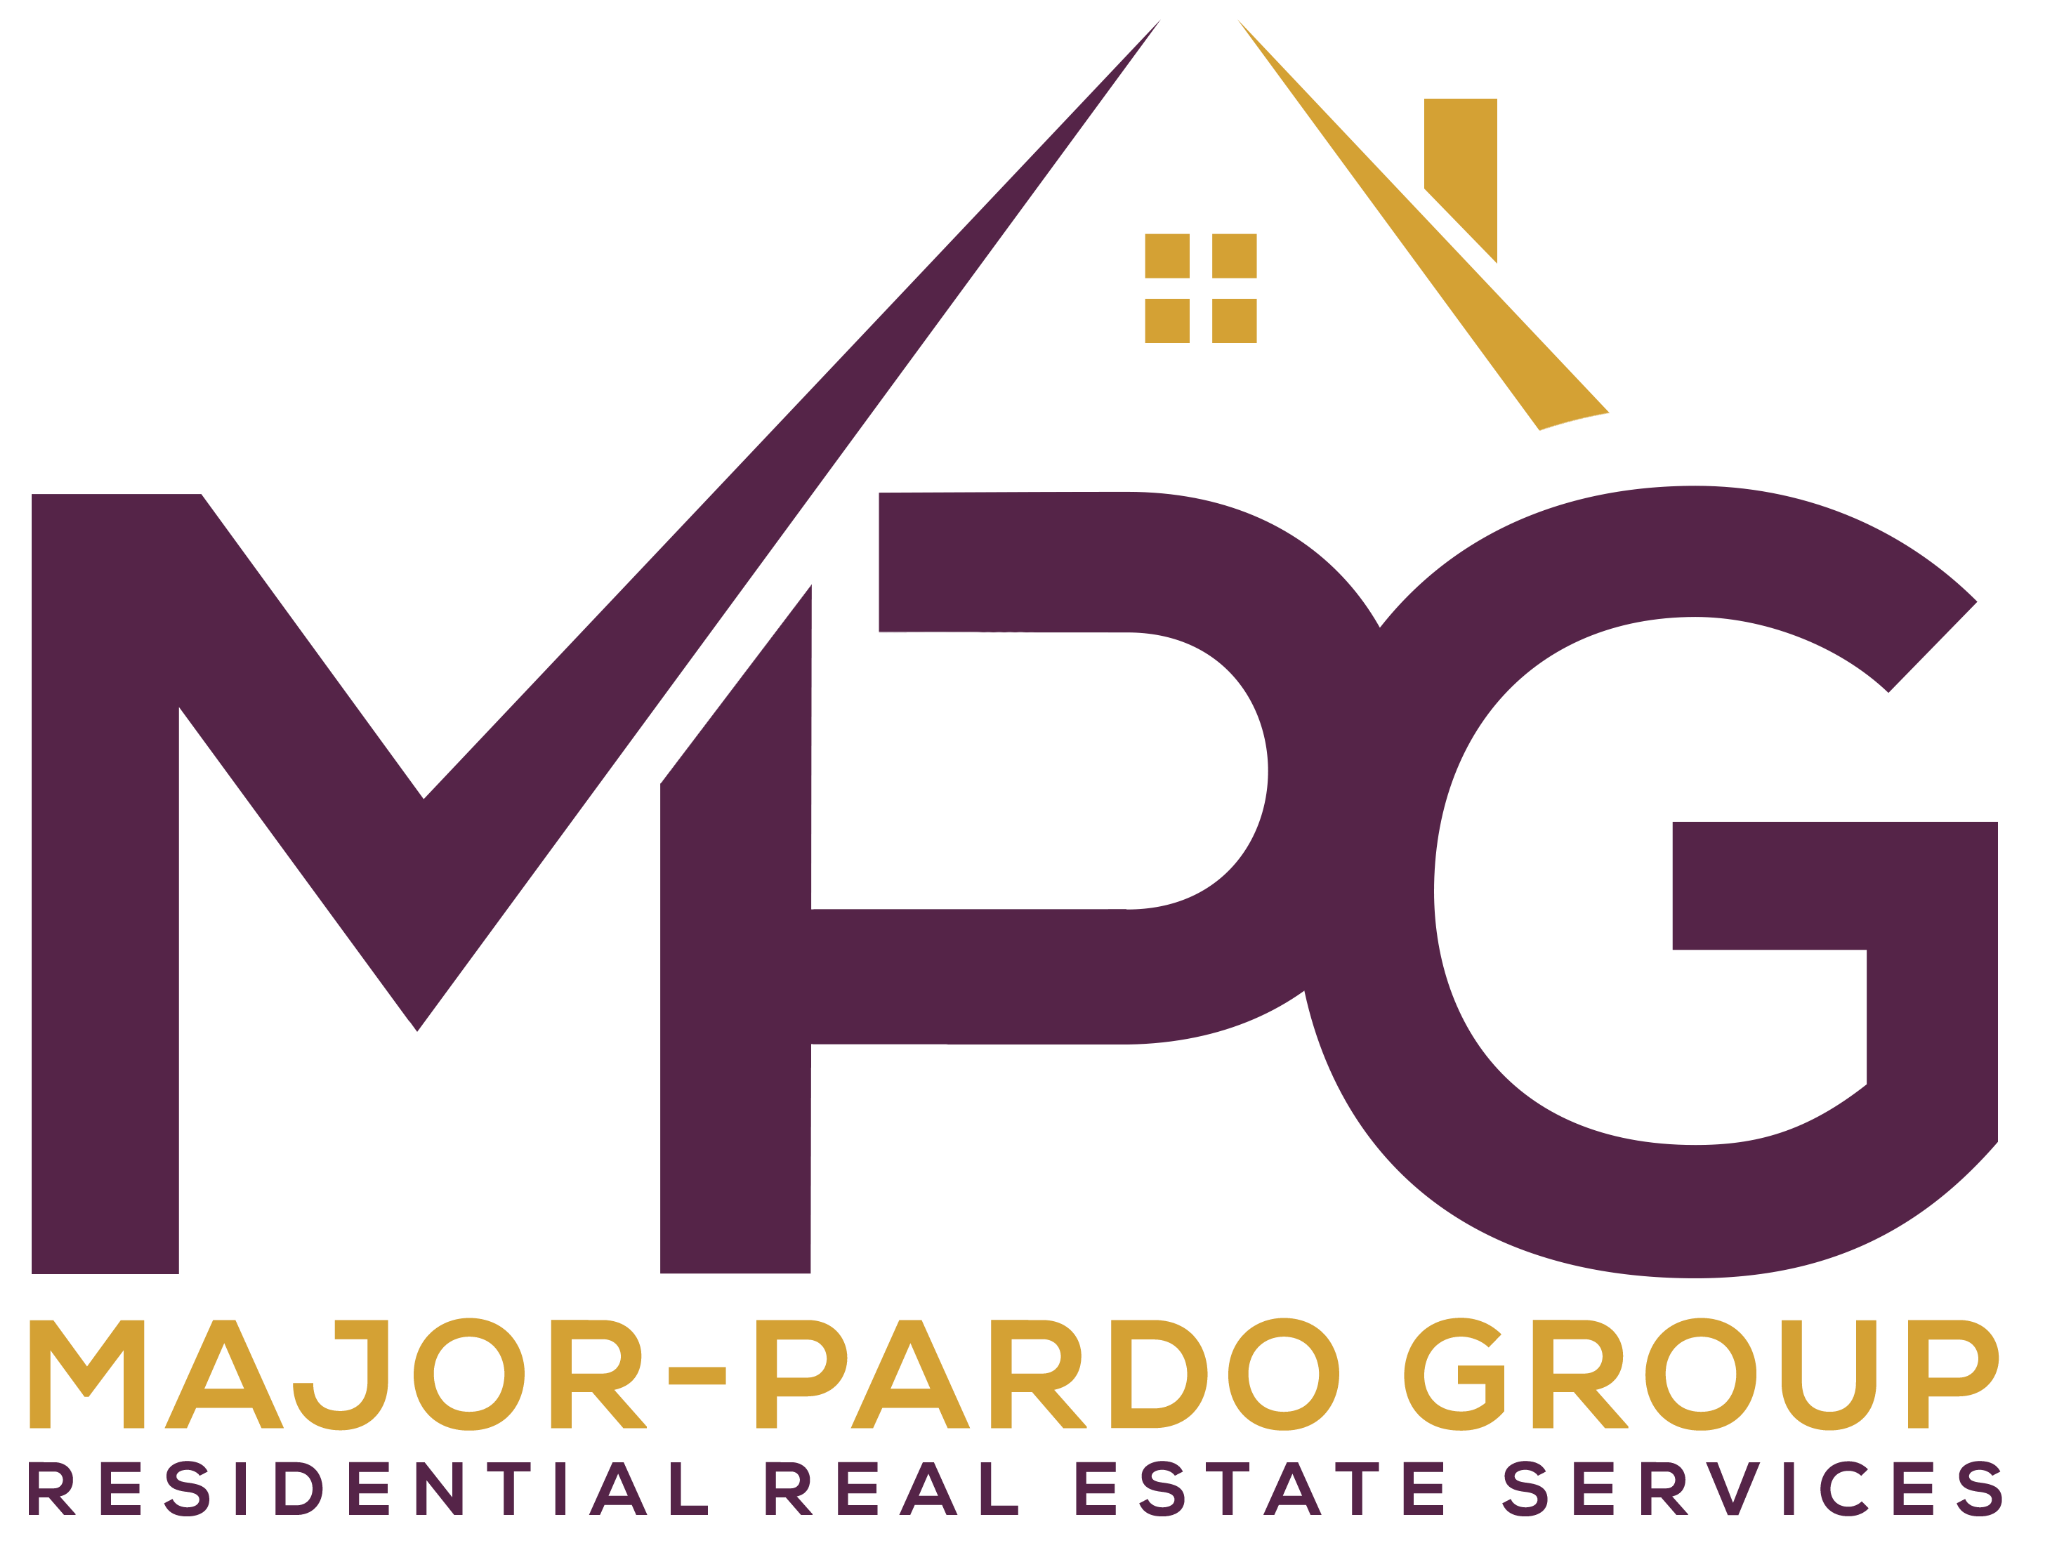 Major Pardo Group